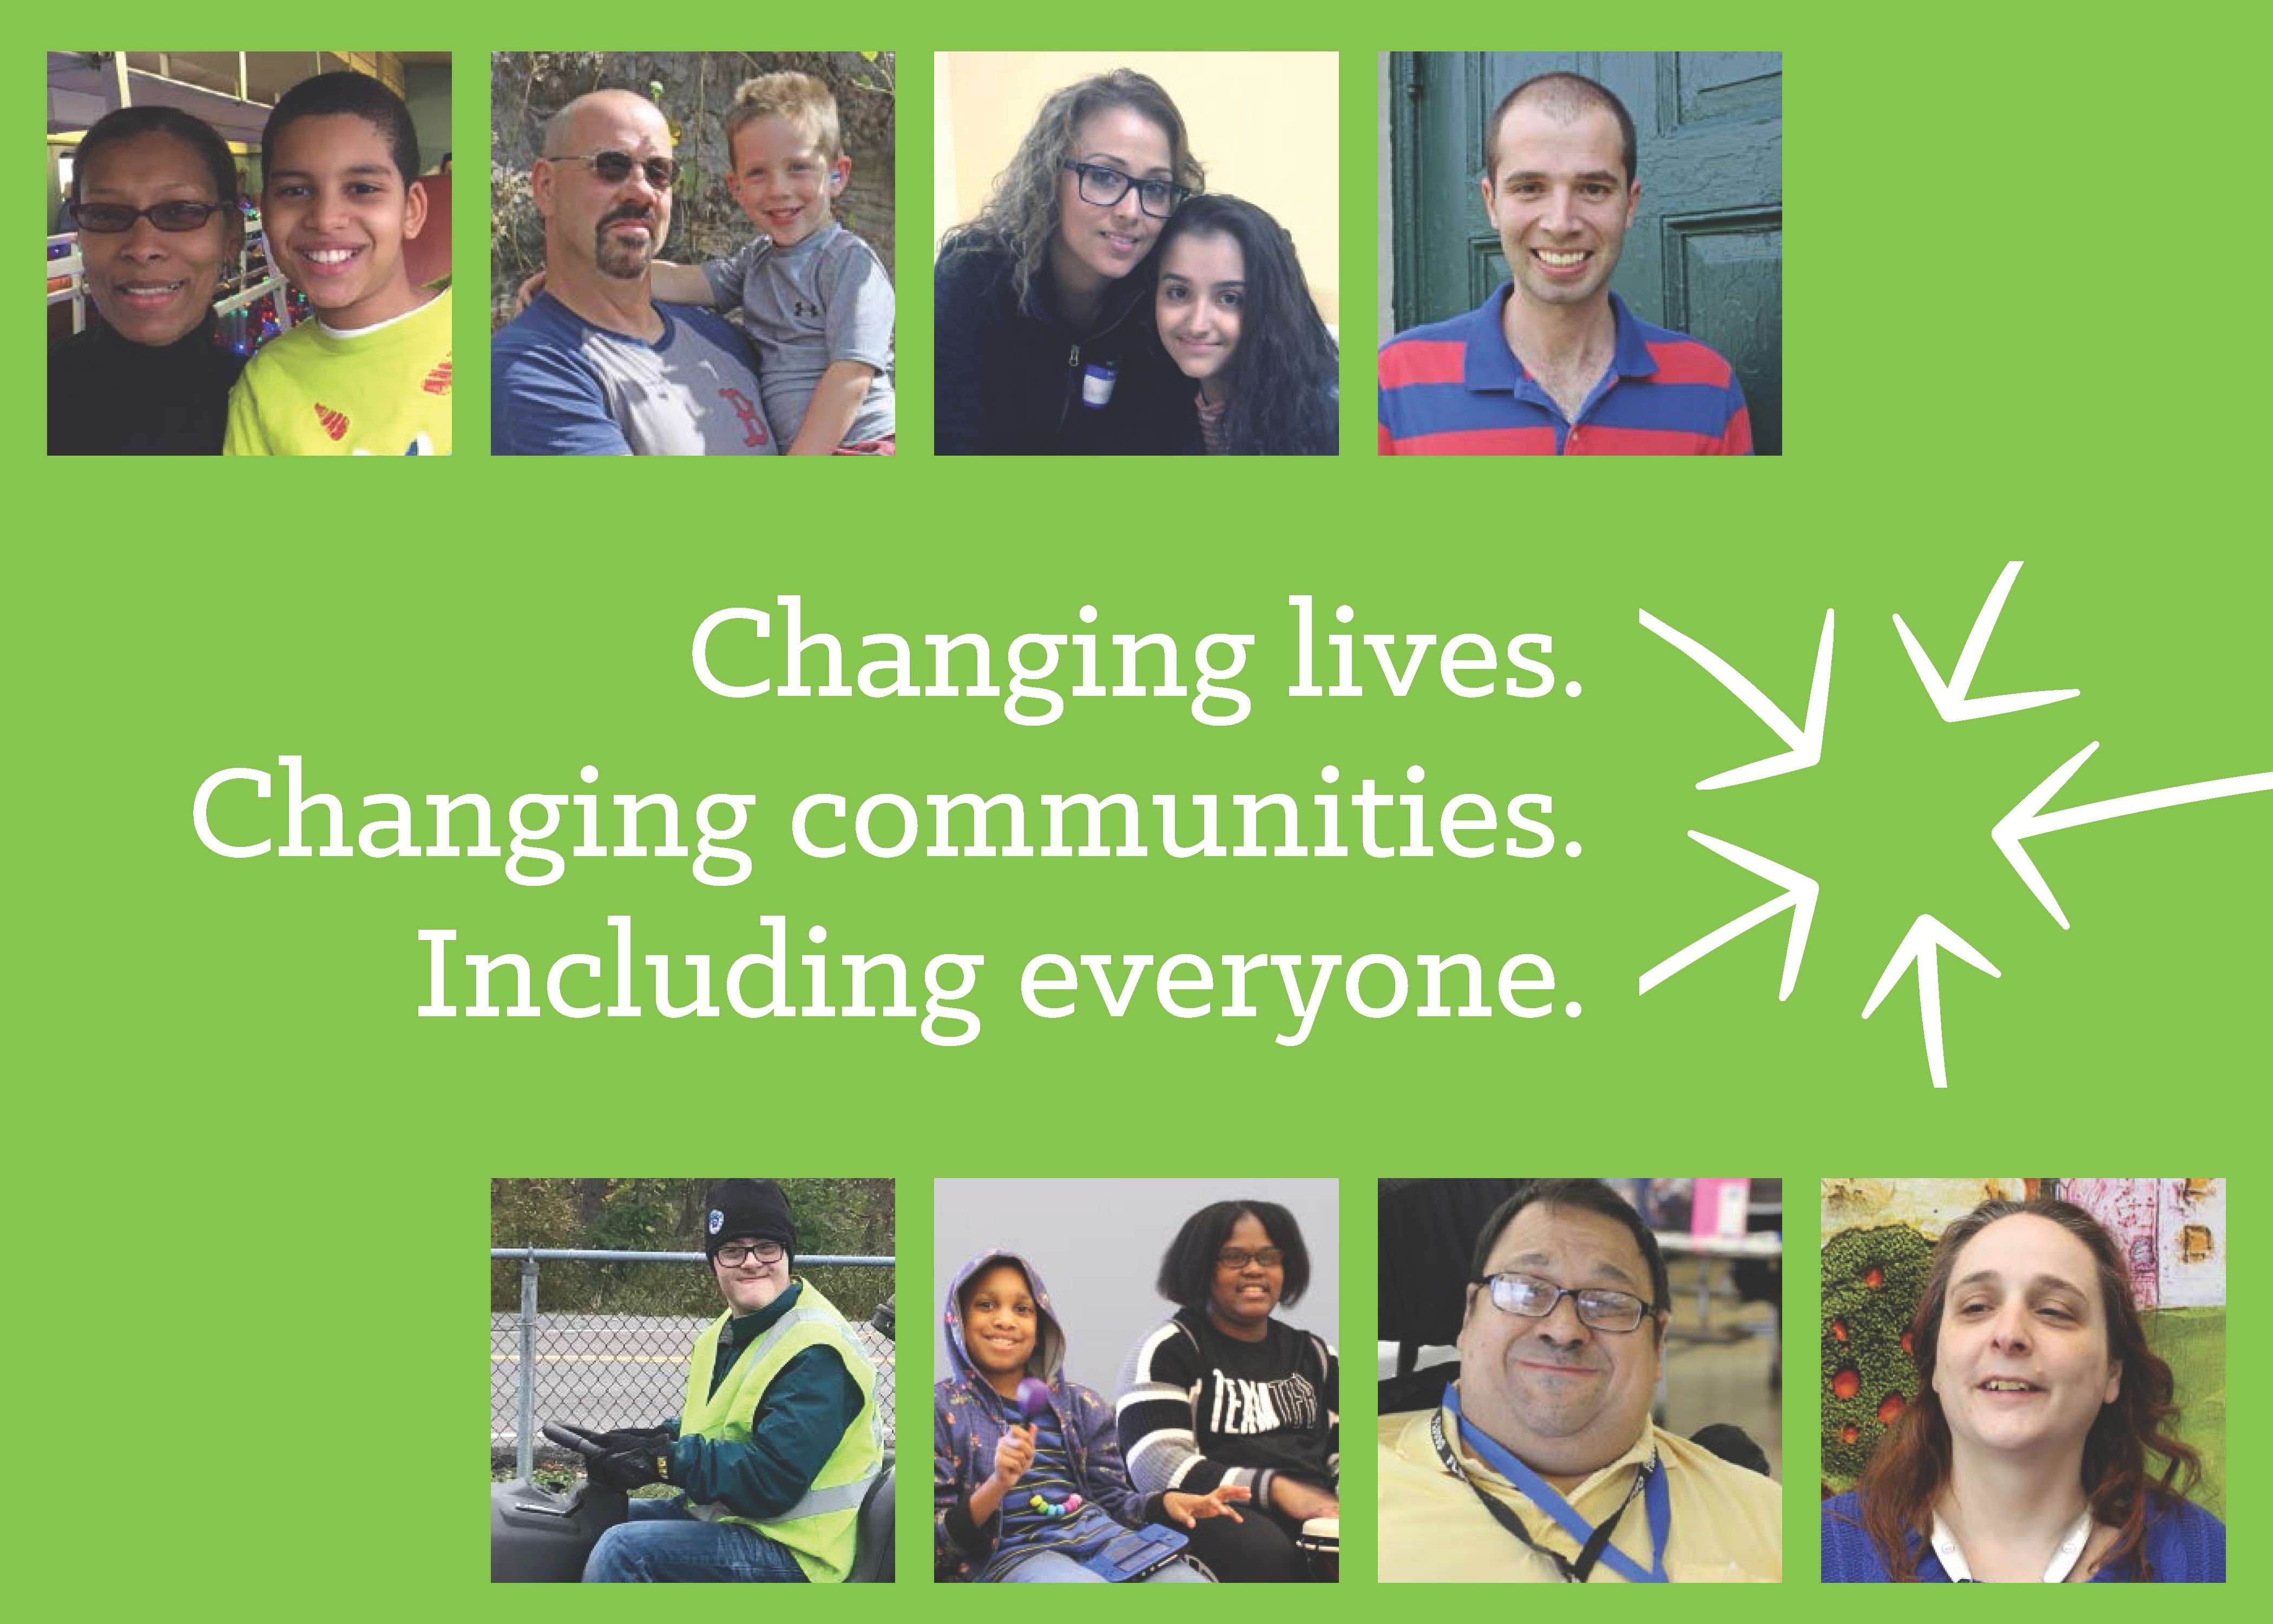 Photo collage of people singly or together around the words Changing Lives Changing Communities Including Everyone